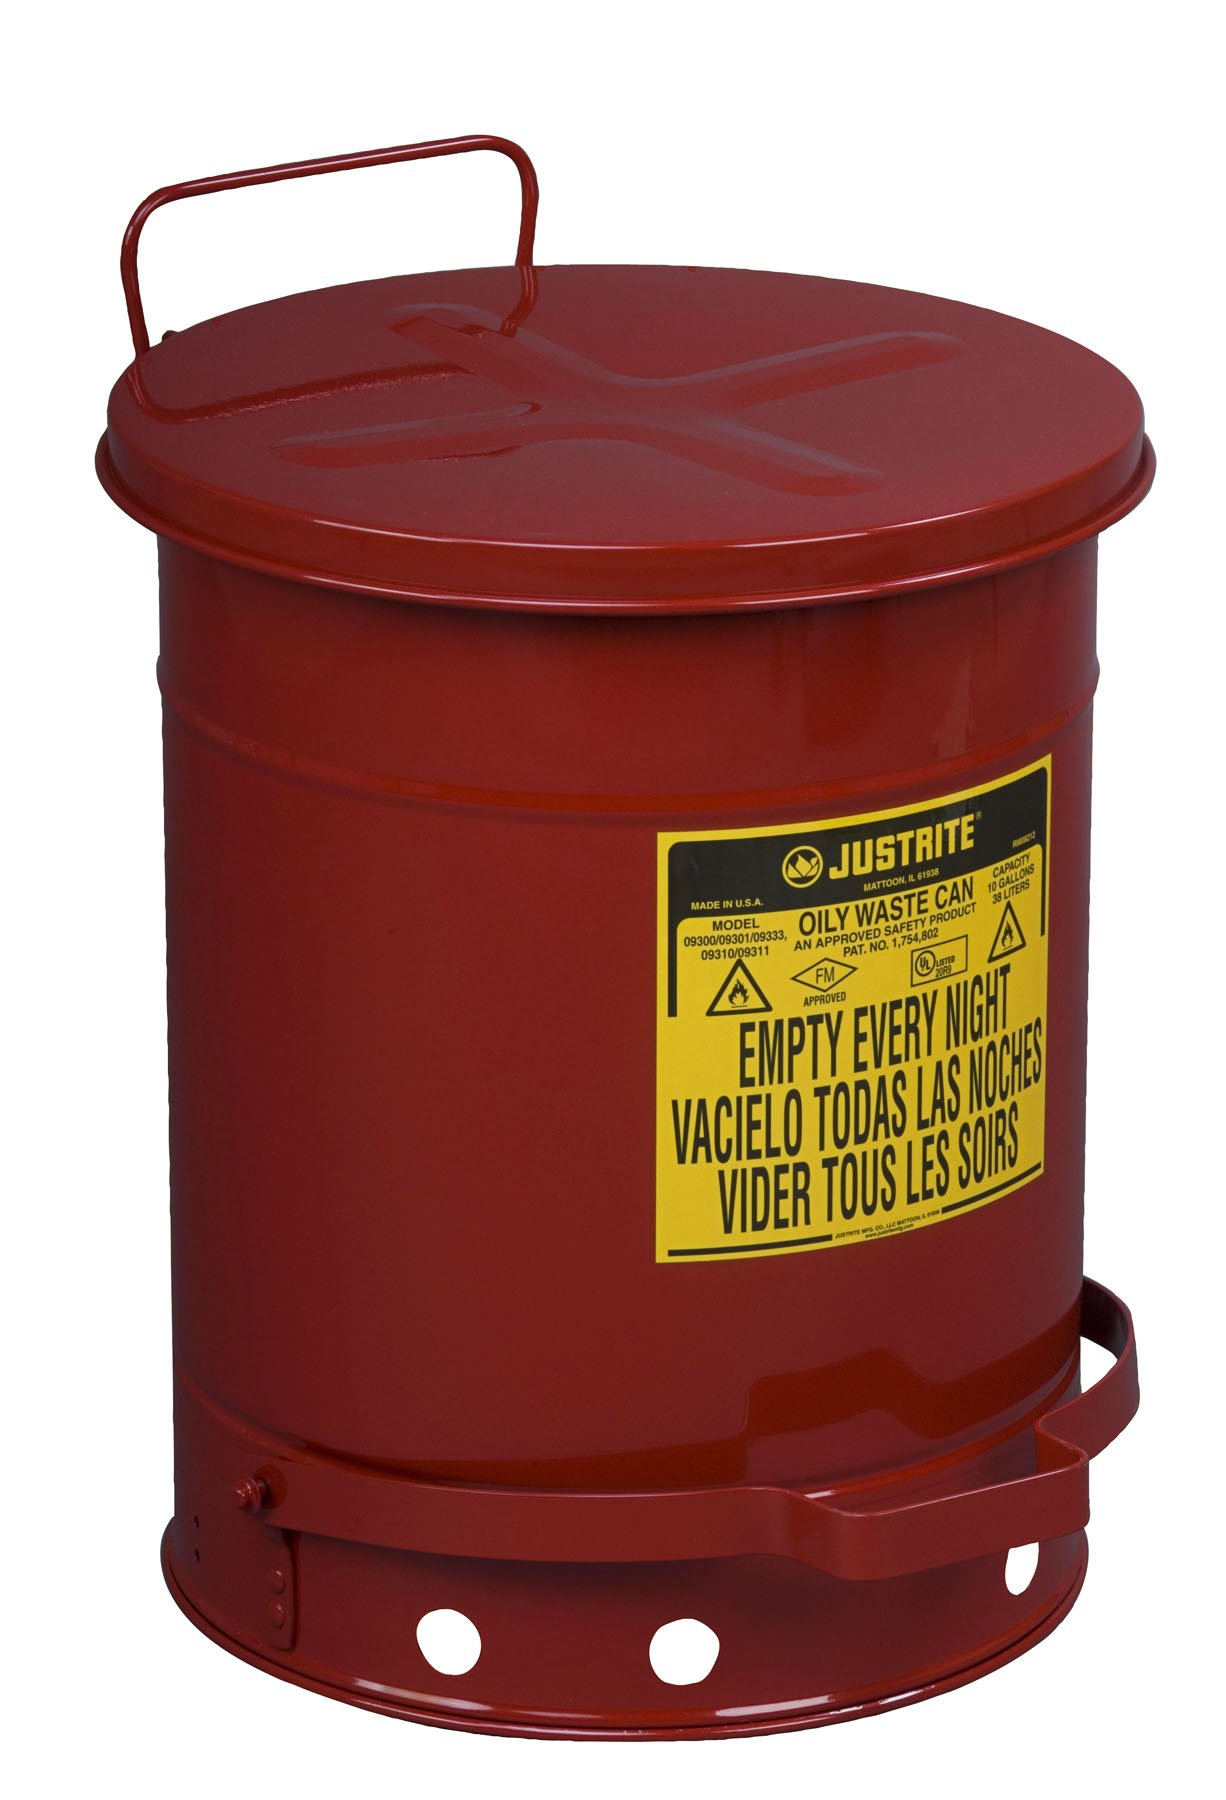 Justrite 09300; Galvanized-Steel; Safety cans; for Oily Waste; Red; Foot Operated Cover; Raised, Ventilated Bottom; Reinforced Ribs; Self-Closing; UL Listed; FM Approved; Capacity: 10 gal. (38L)